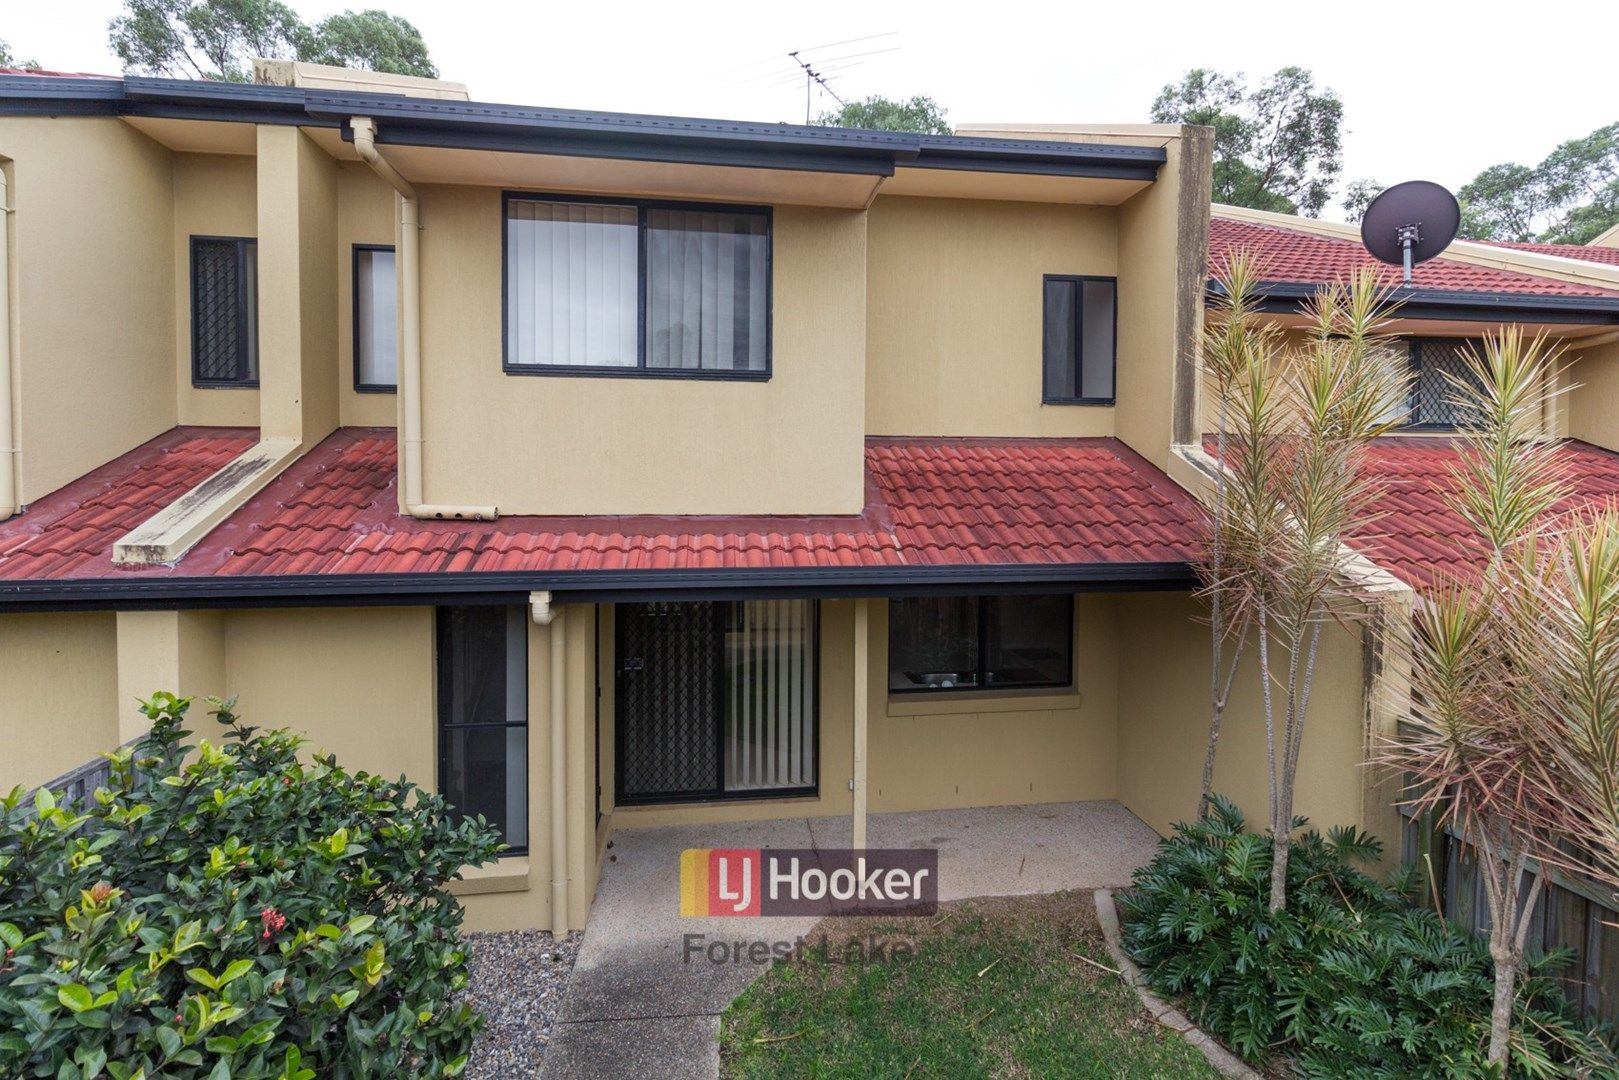 2/88 Mulgrave Crescent, Forest Lake QLD 4078, Image 0